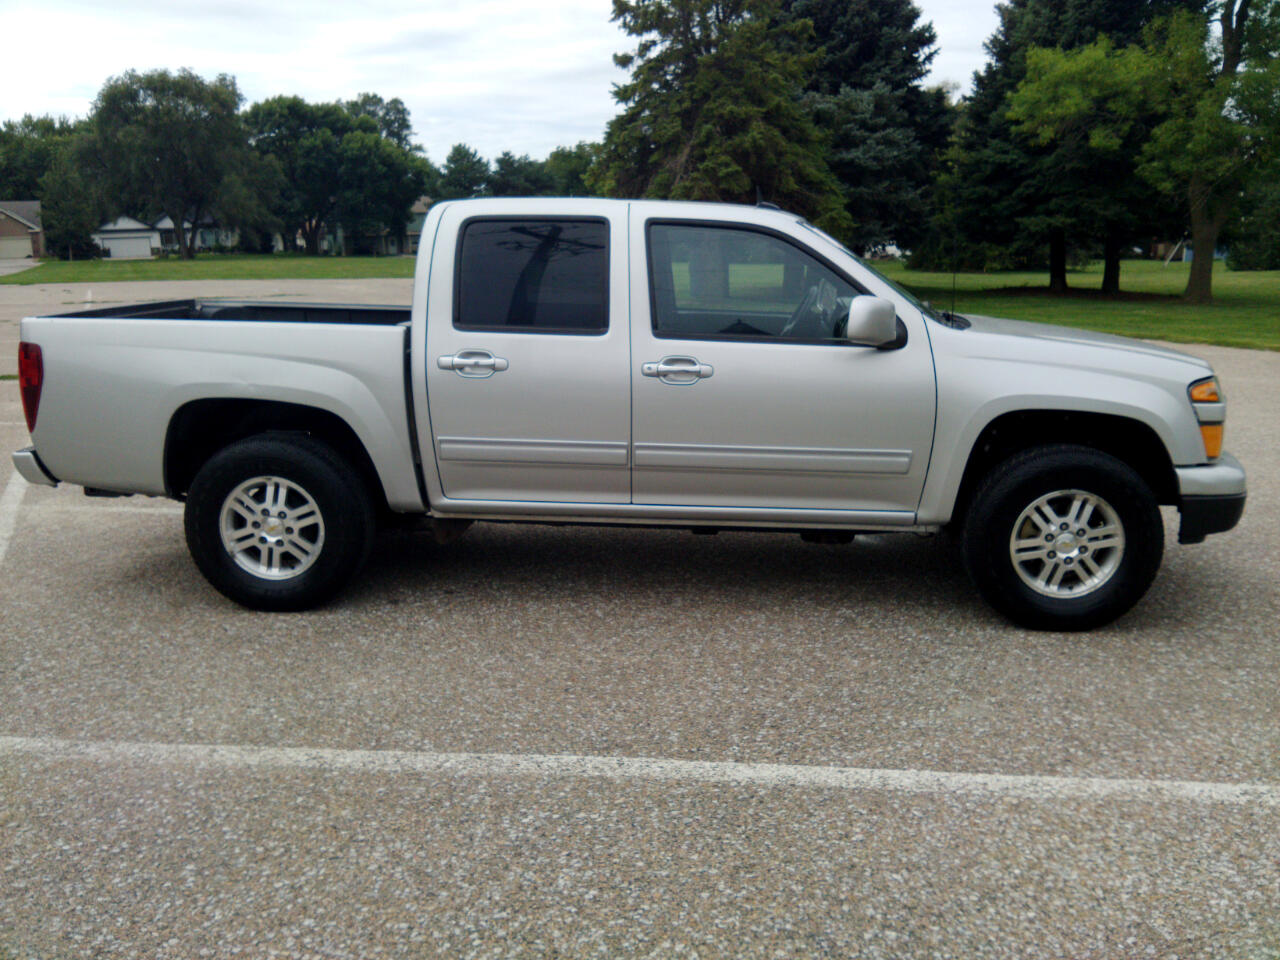 2011 Chevrolet Colorado 4WD Crew Cab 126.0